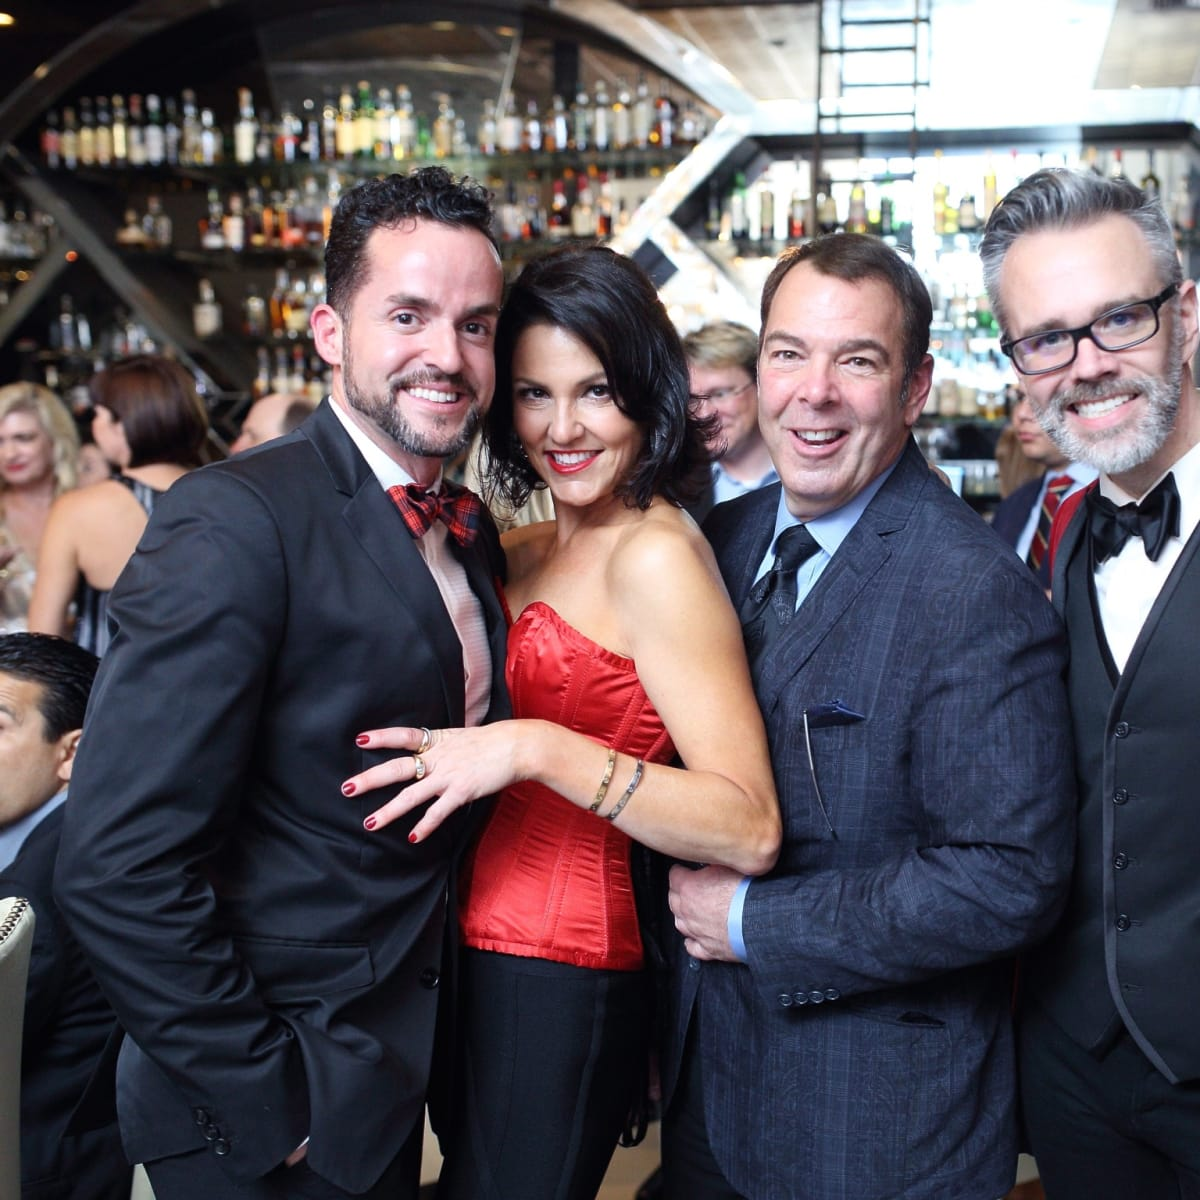 Dining Out for Life Fritz McDonald, Jessica Rossman, Peter Martino, Michael Pearce